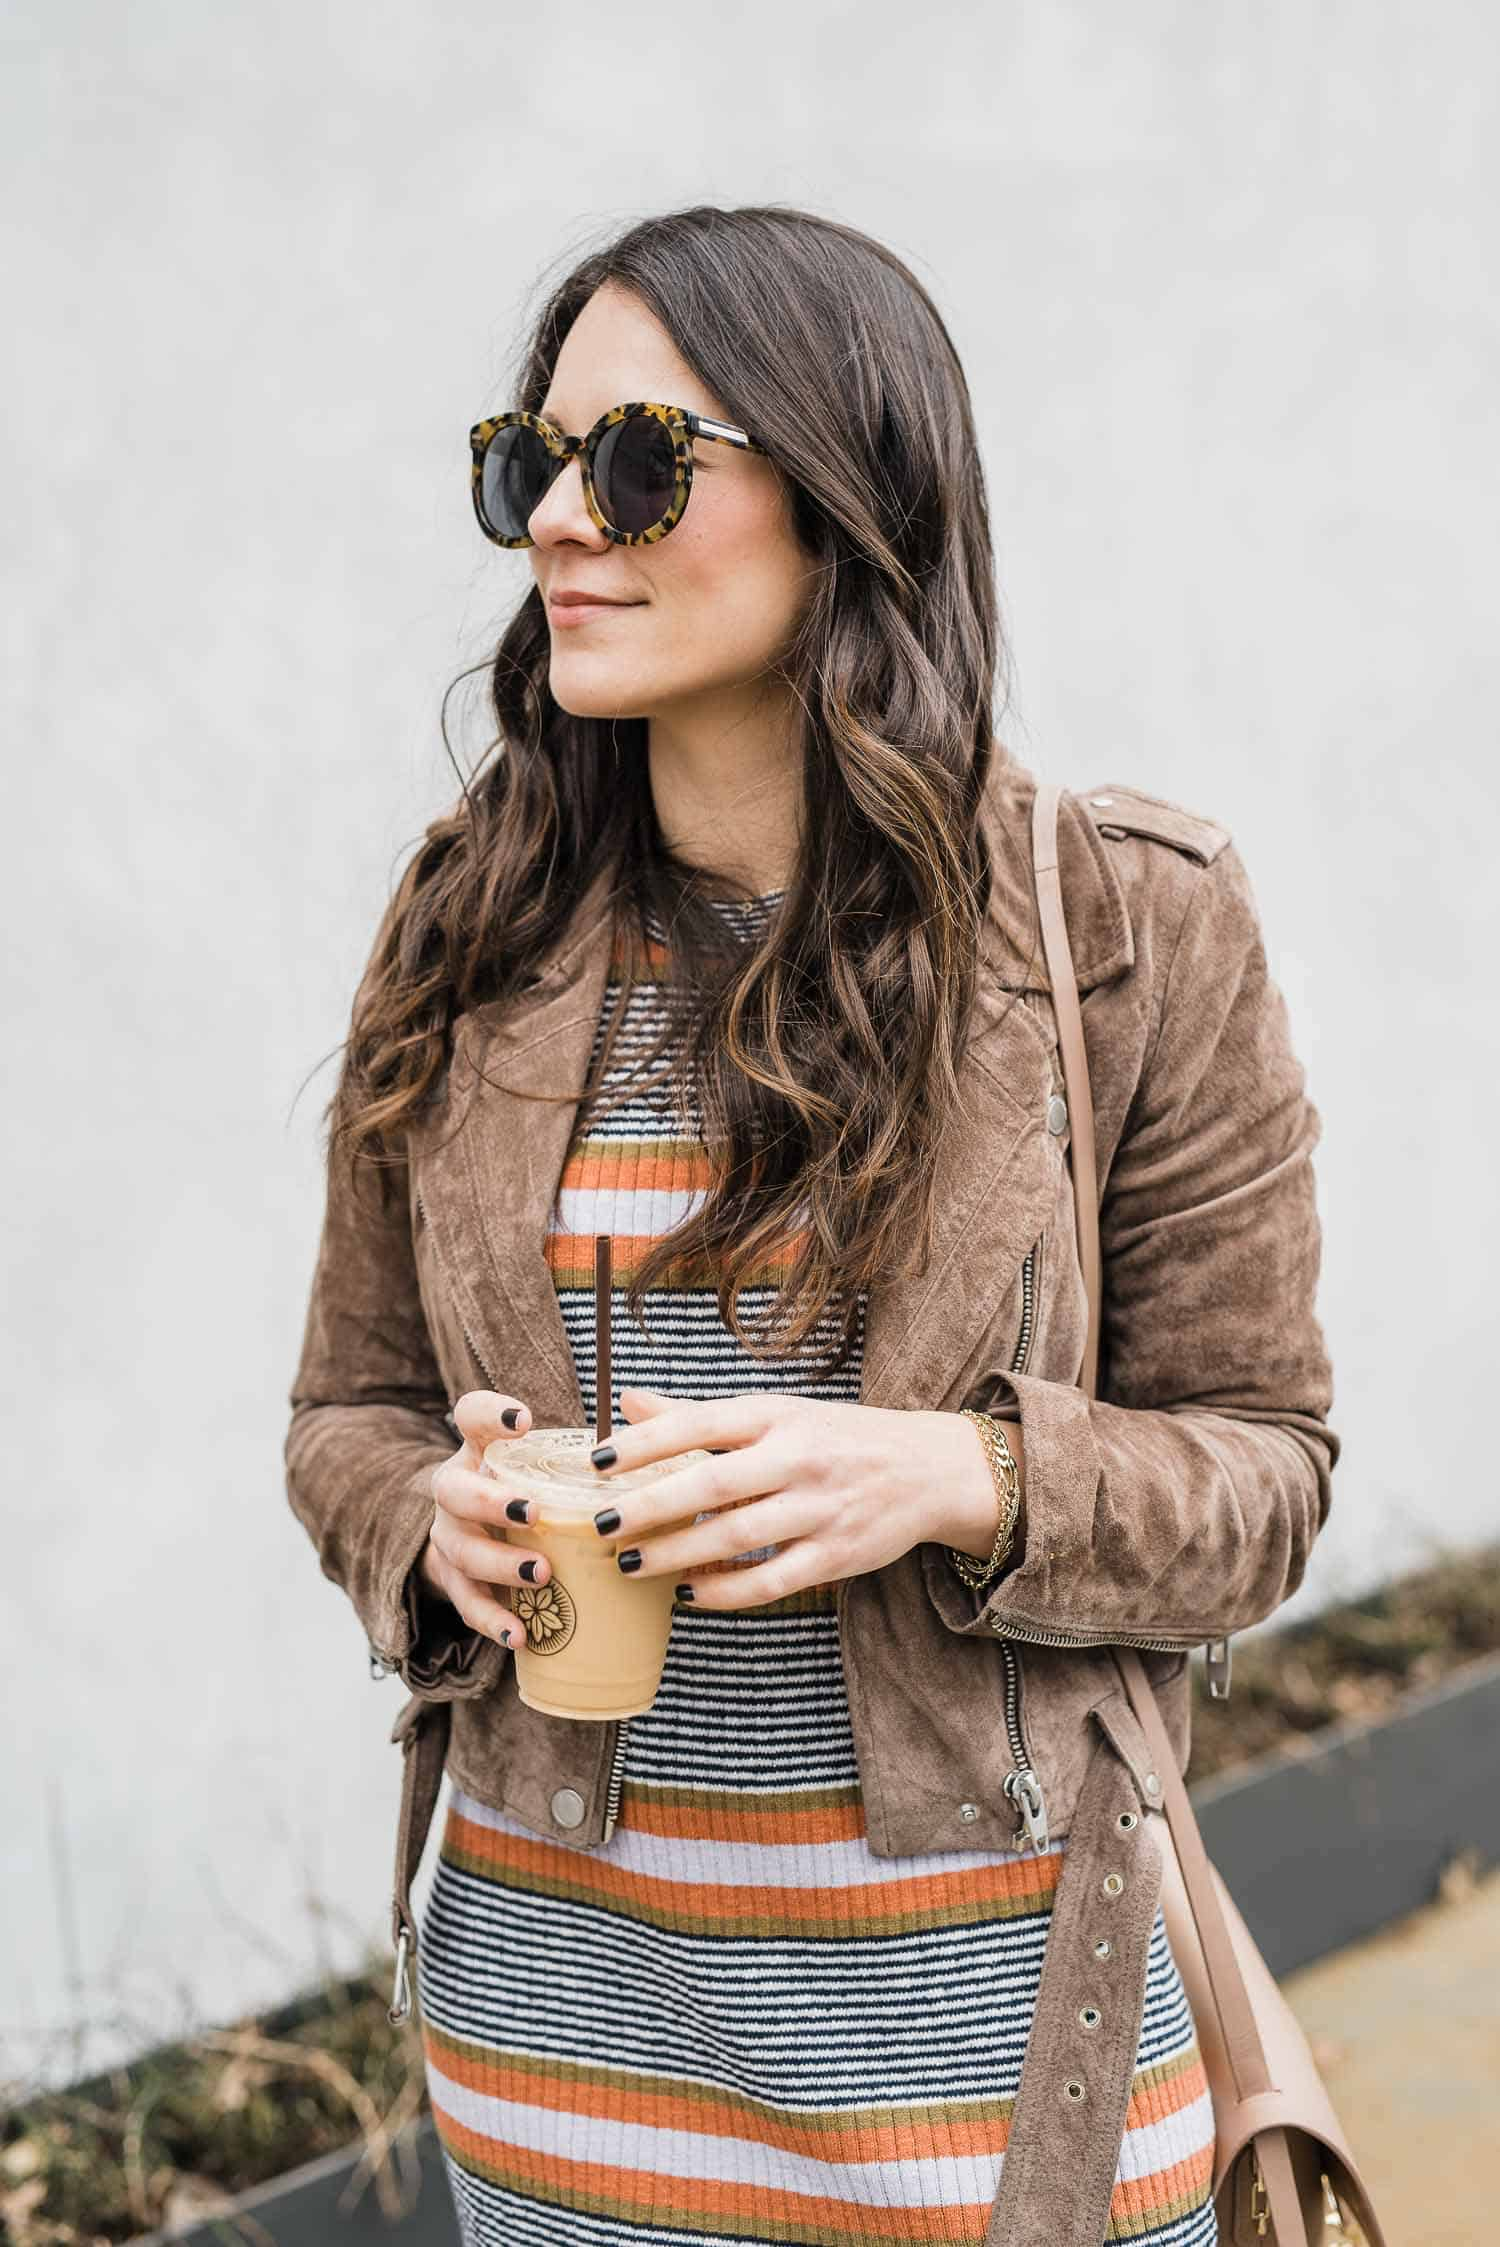 suede moto jacket, striped dress, sunglasses look